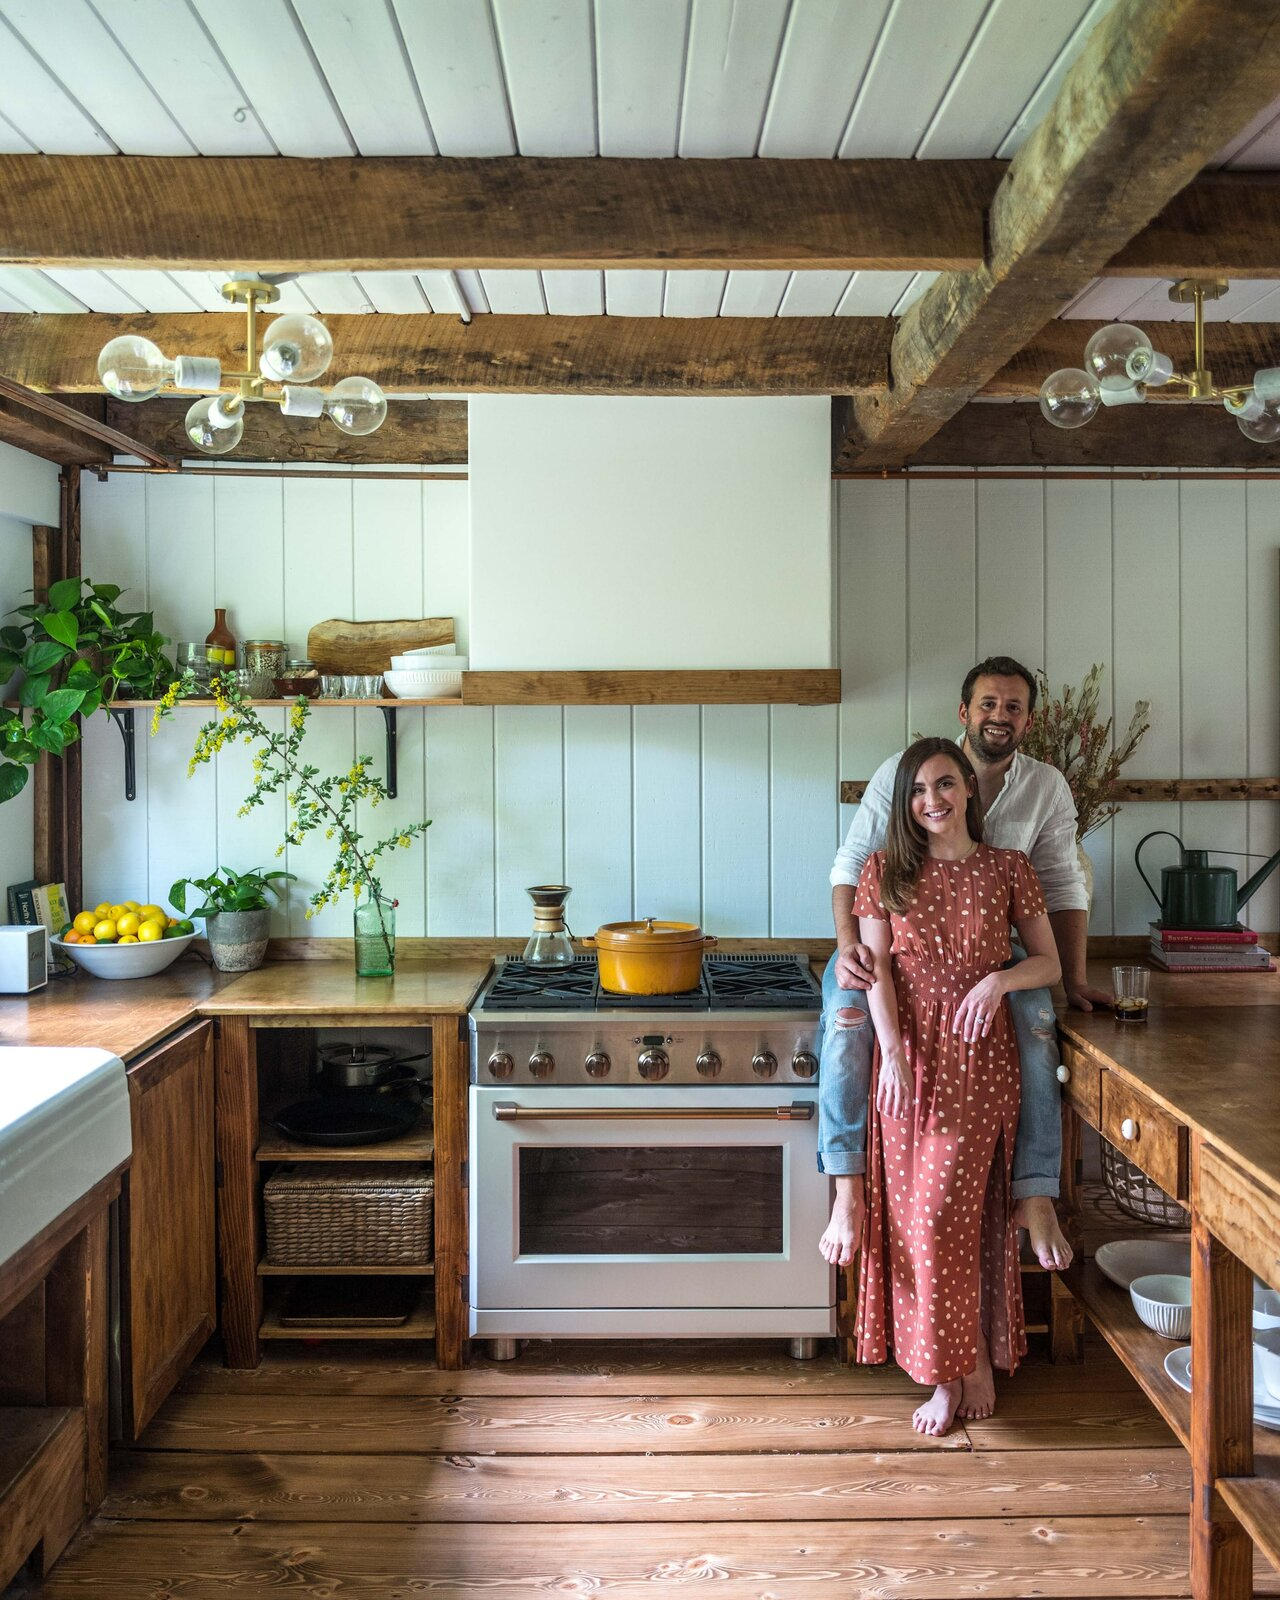 The Hunter Barnhouse by Danielle and Ely Franko kitchen with wood cabinets